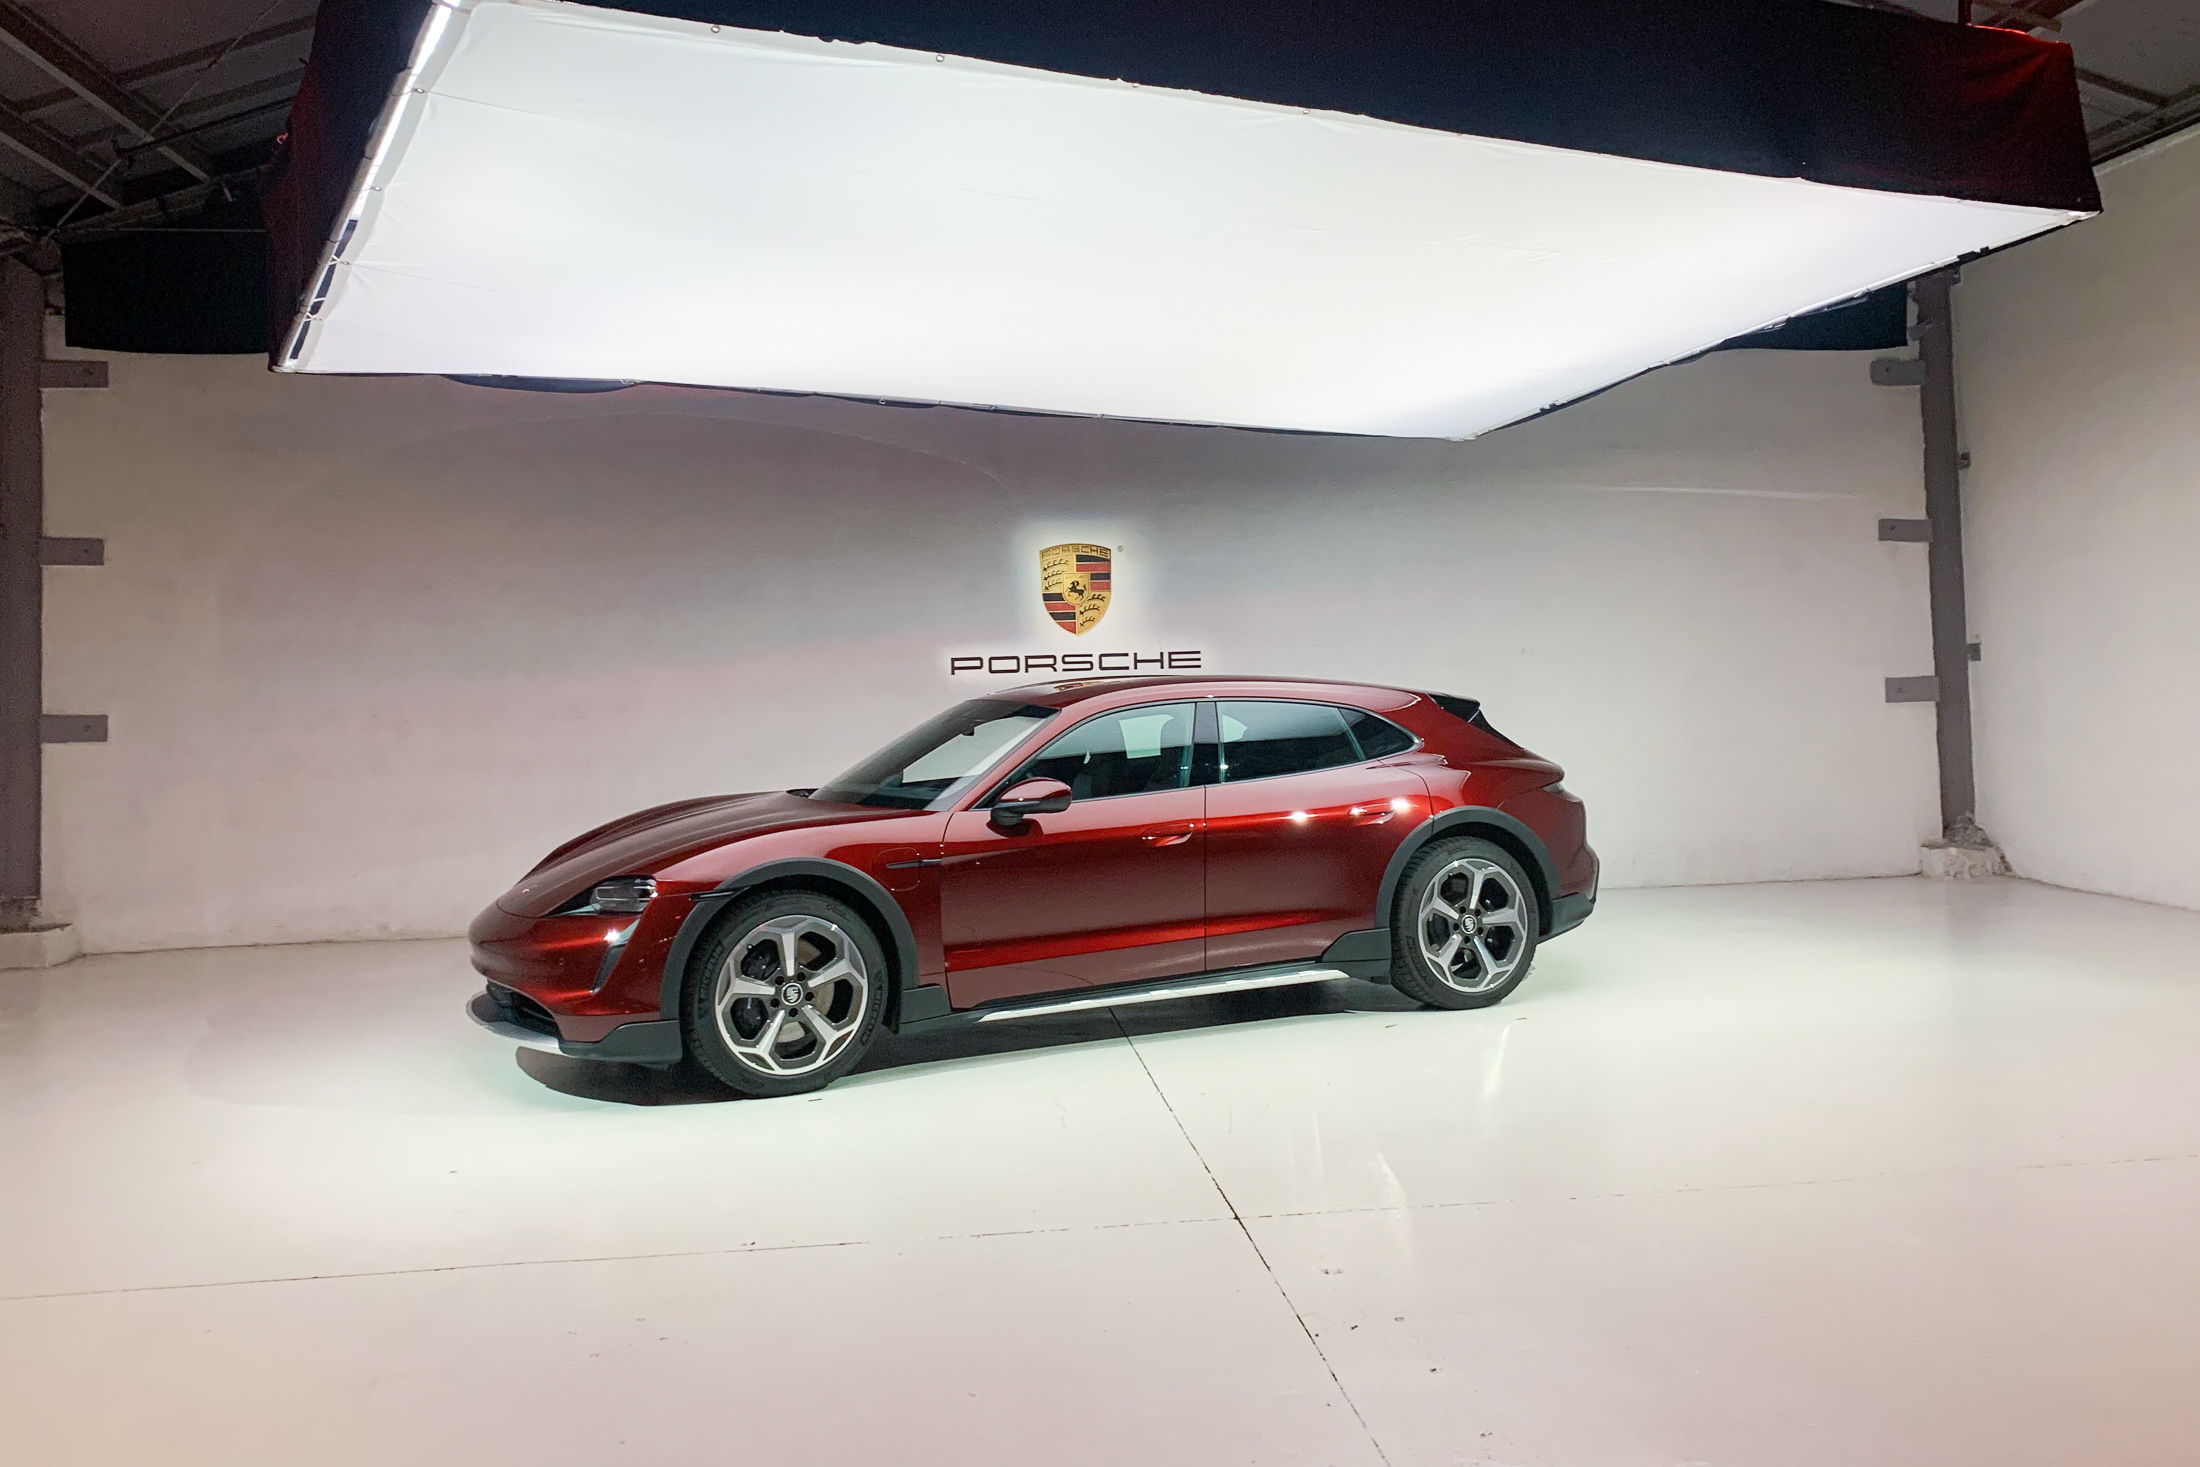 relates to With World's First Electric Station Wagon, Porsche Delivers on Utility